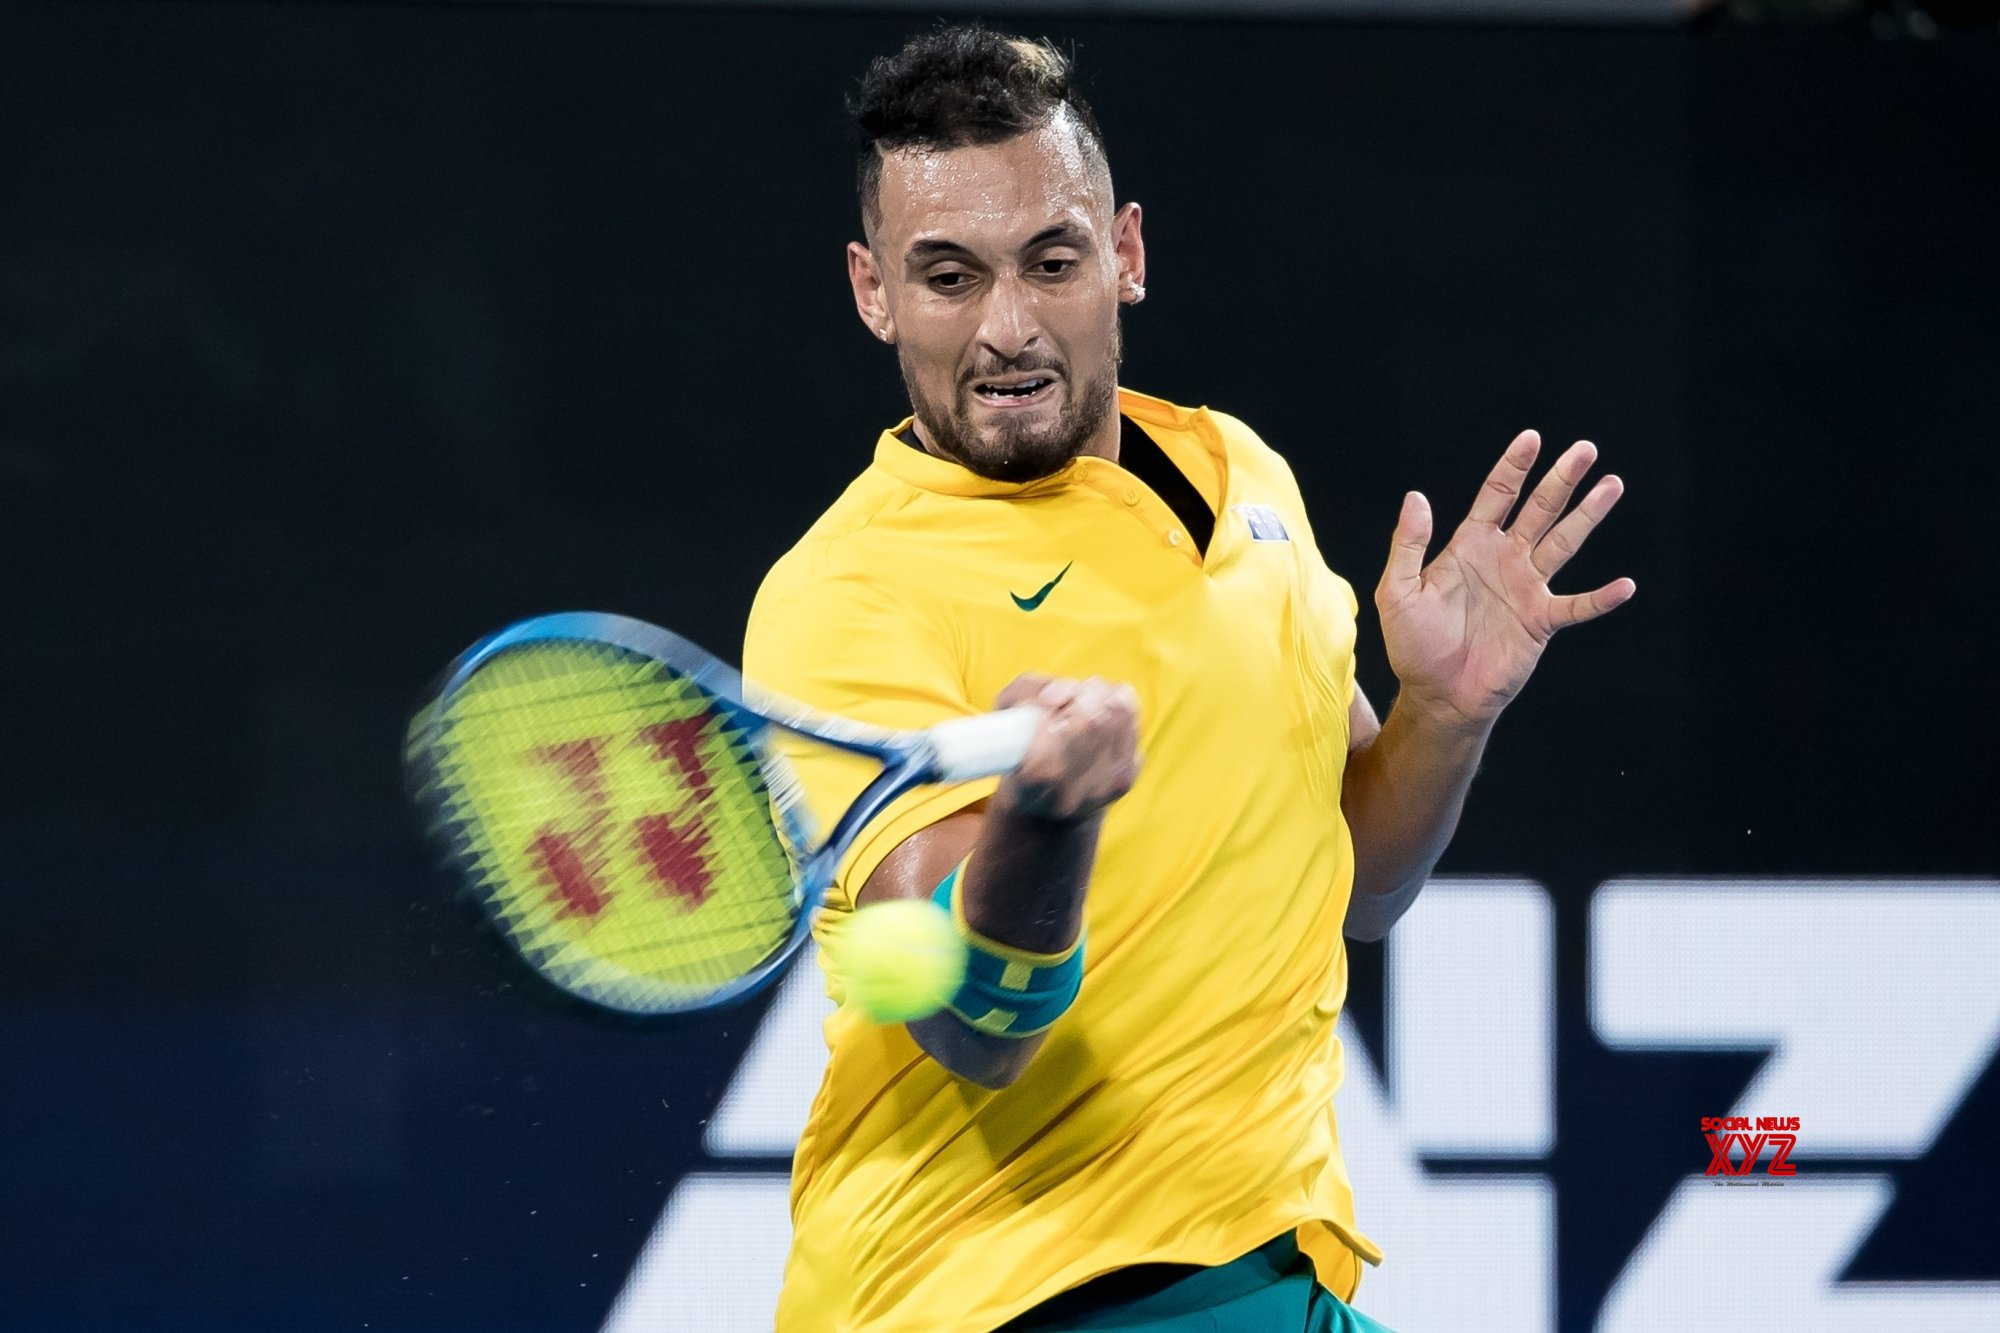 Kyrgios pulls out of US Open due to COVID-19 fears